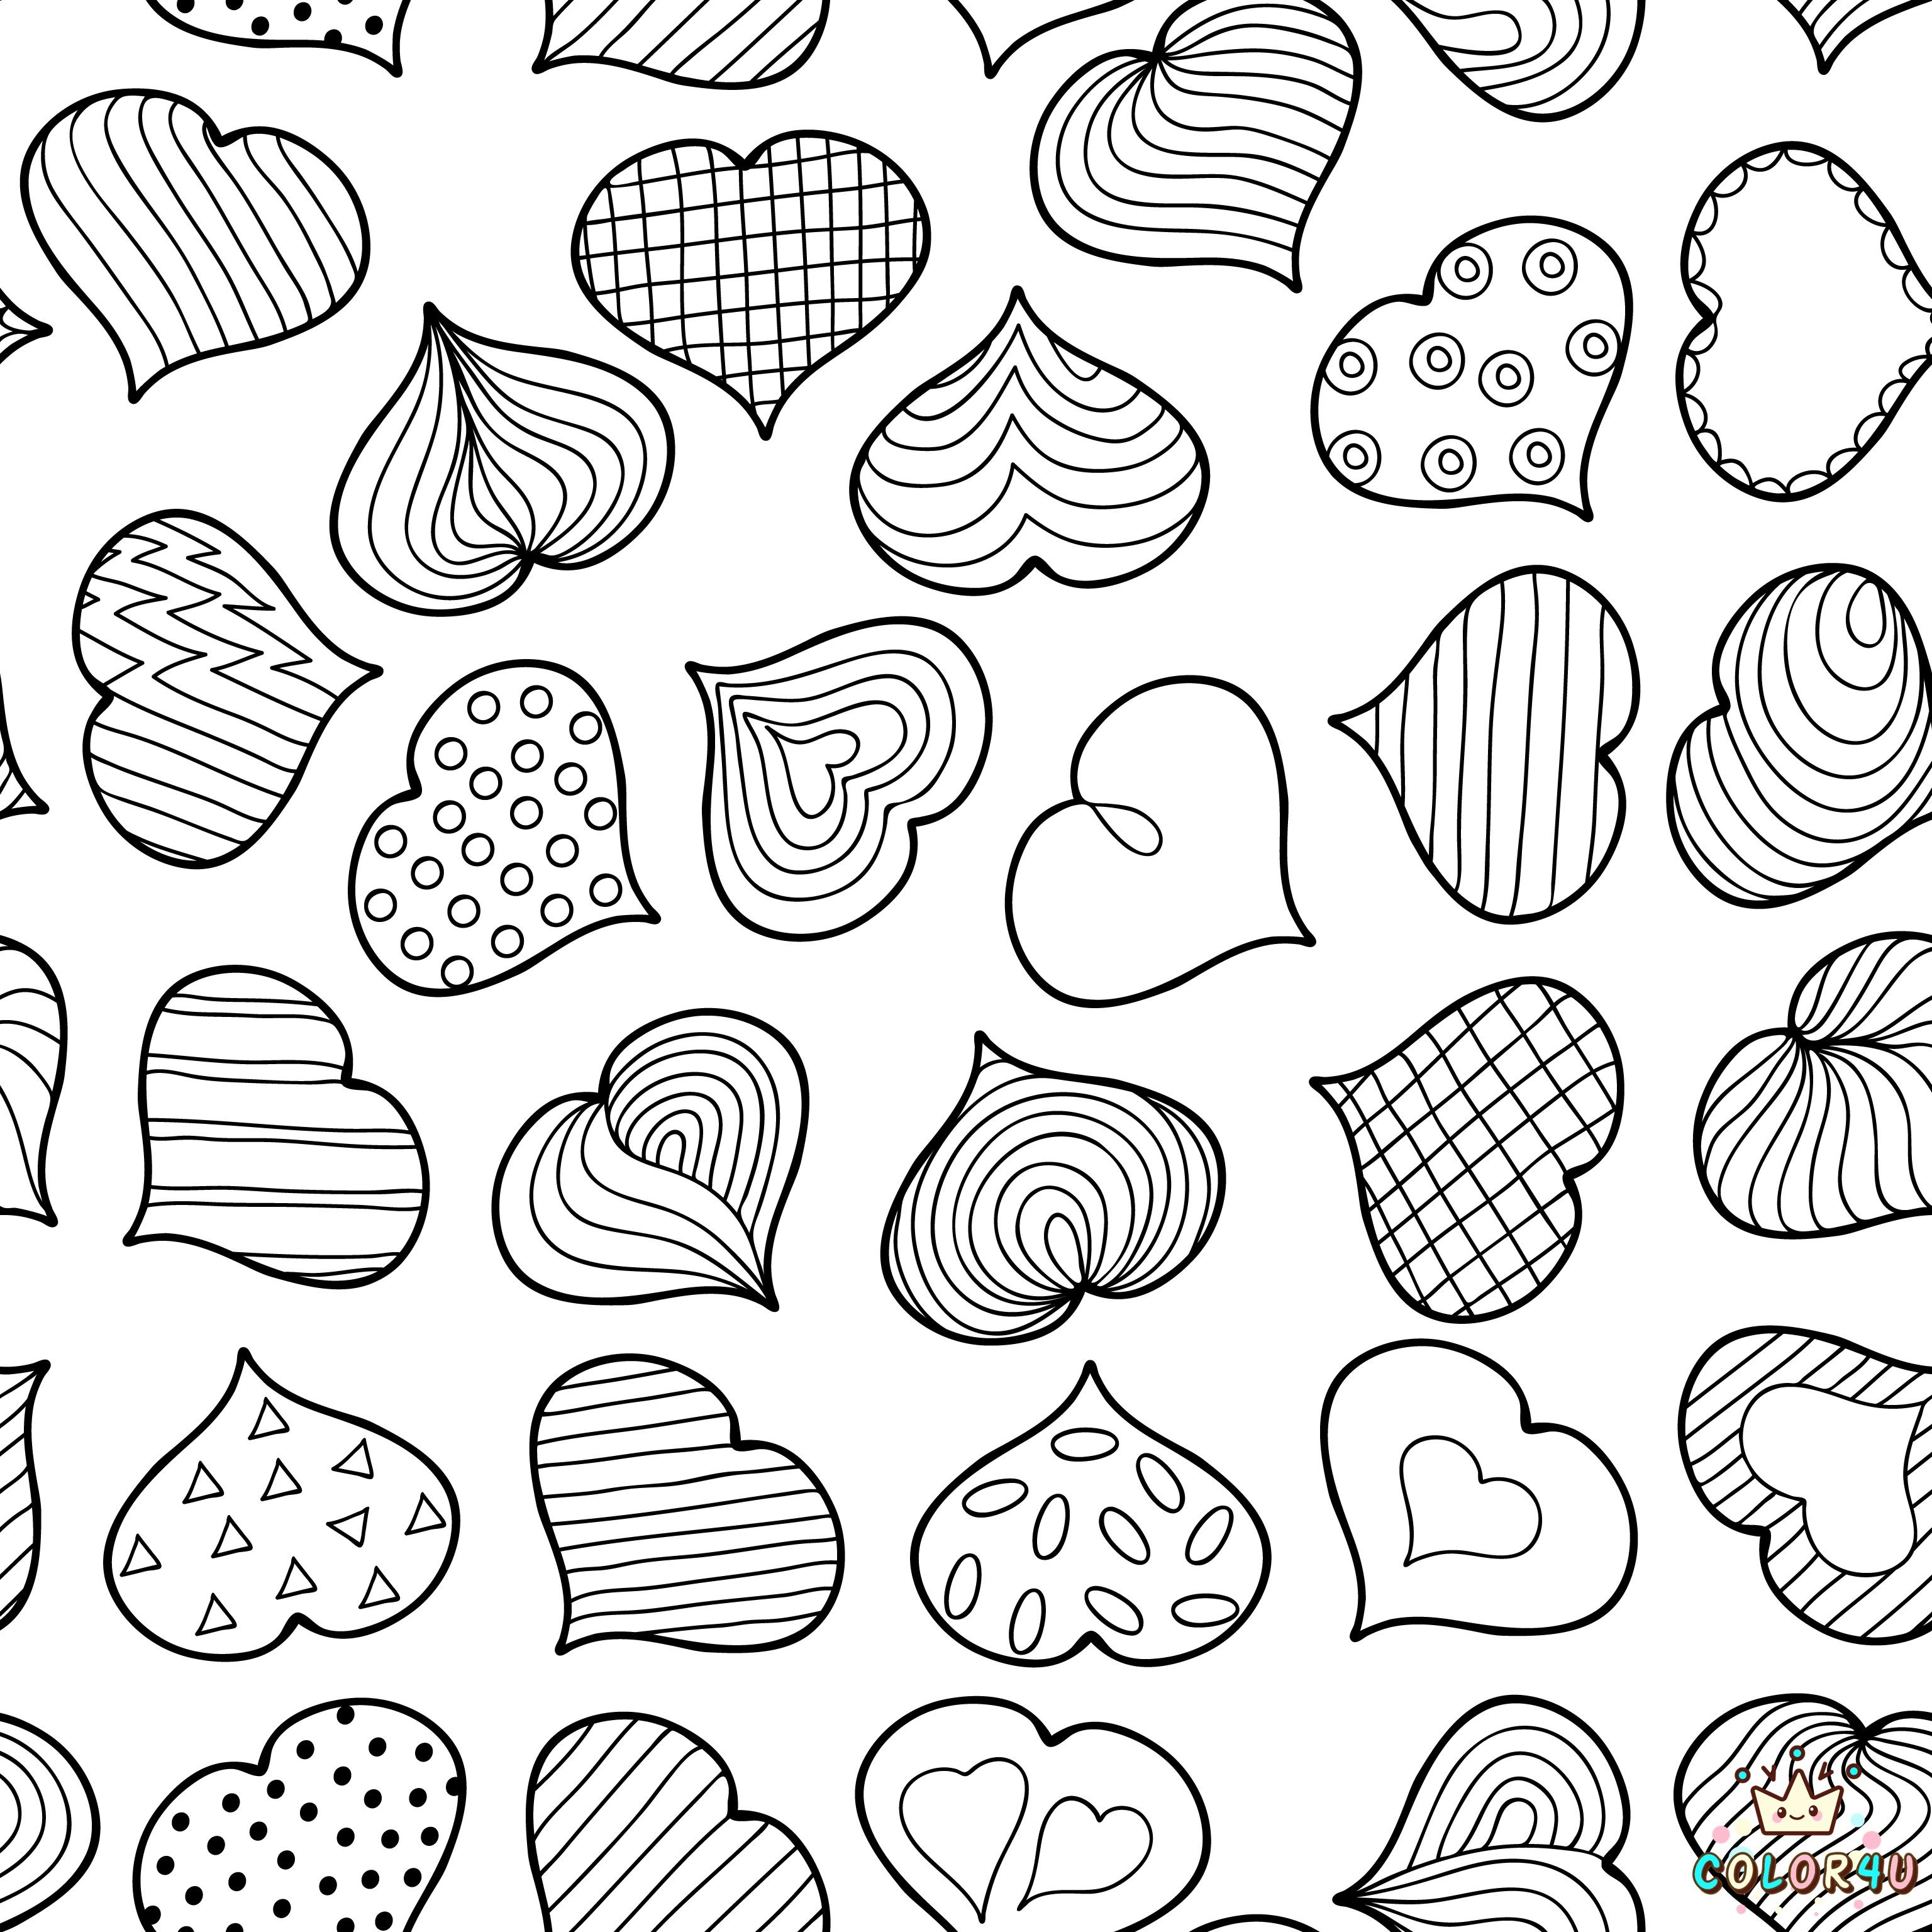 valentines #adultcoloring #agingwithfreedom #ValentinePrintables ...